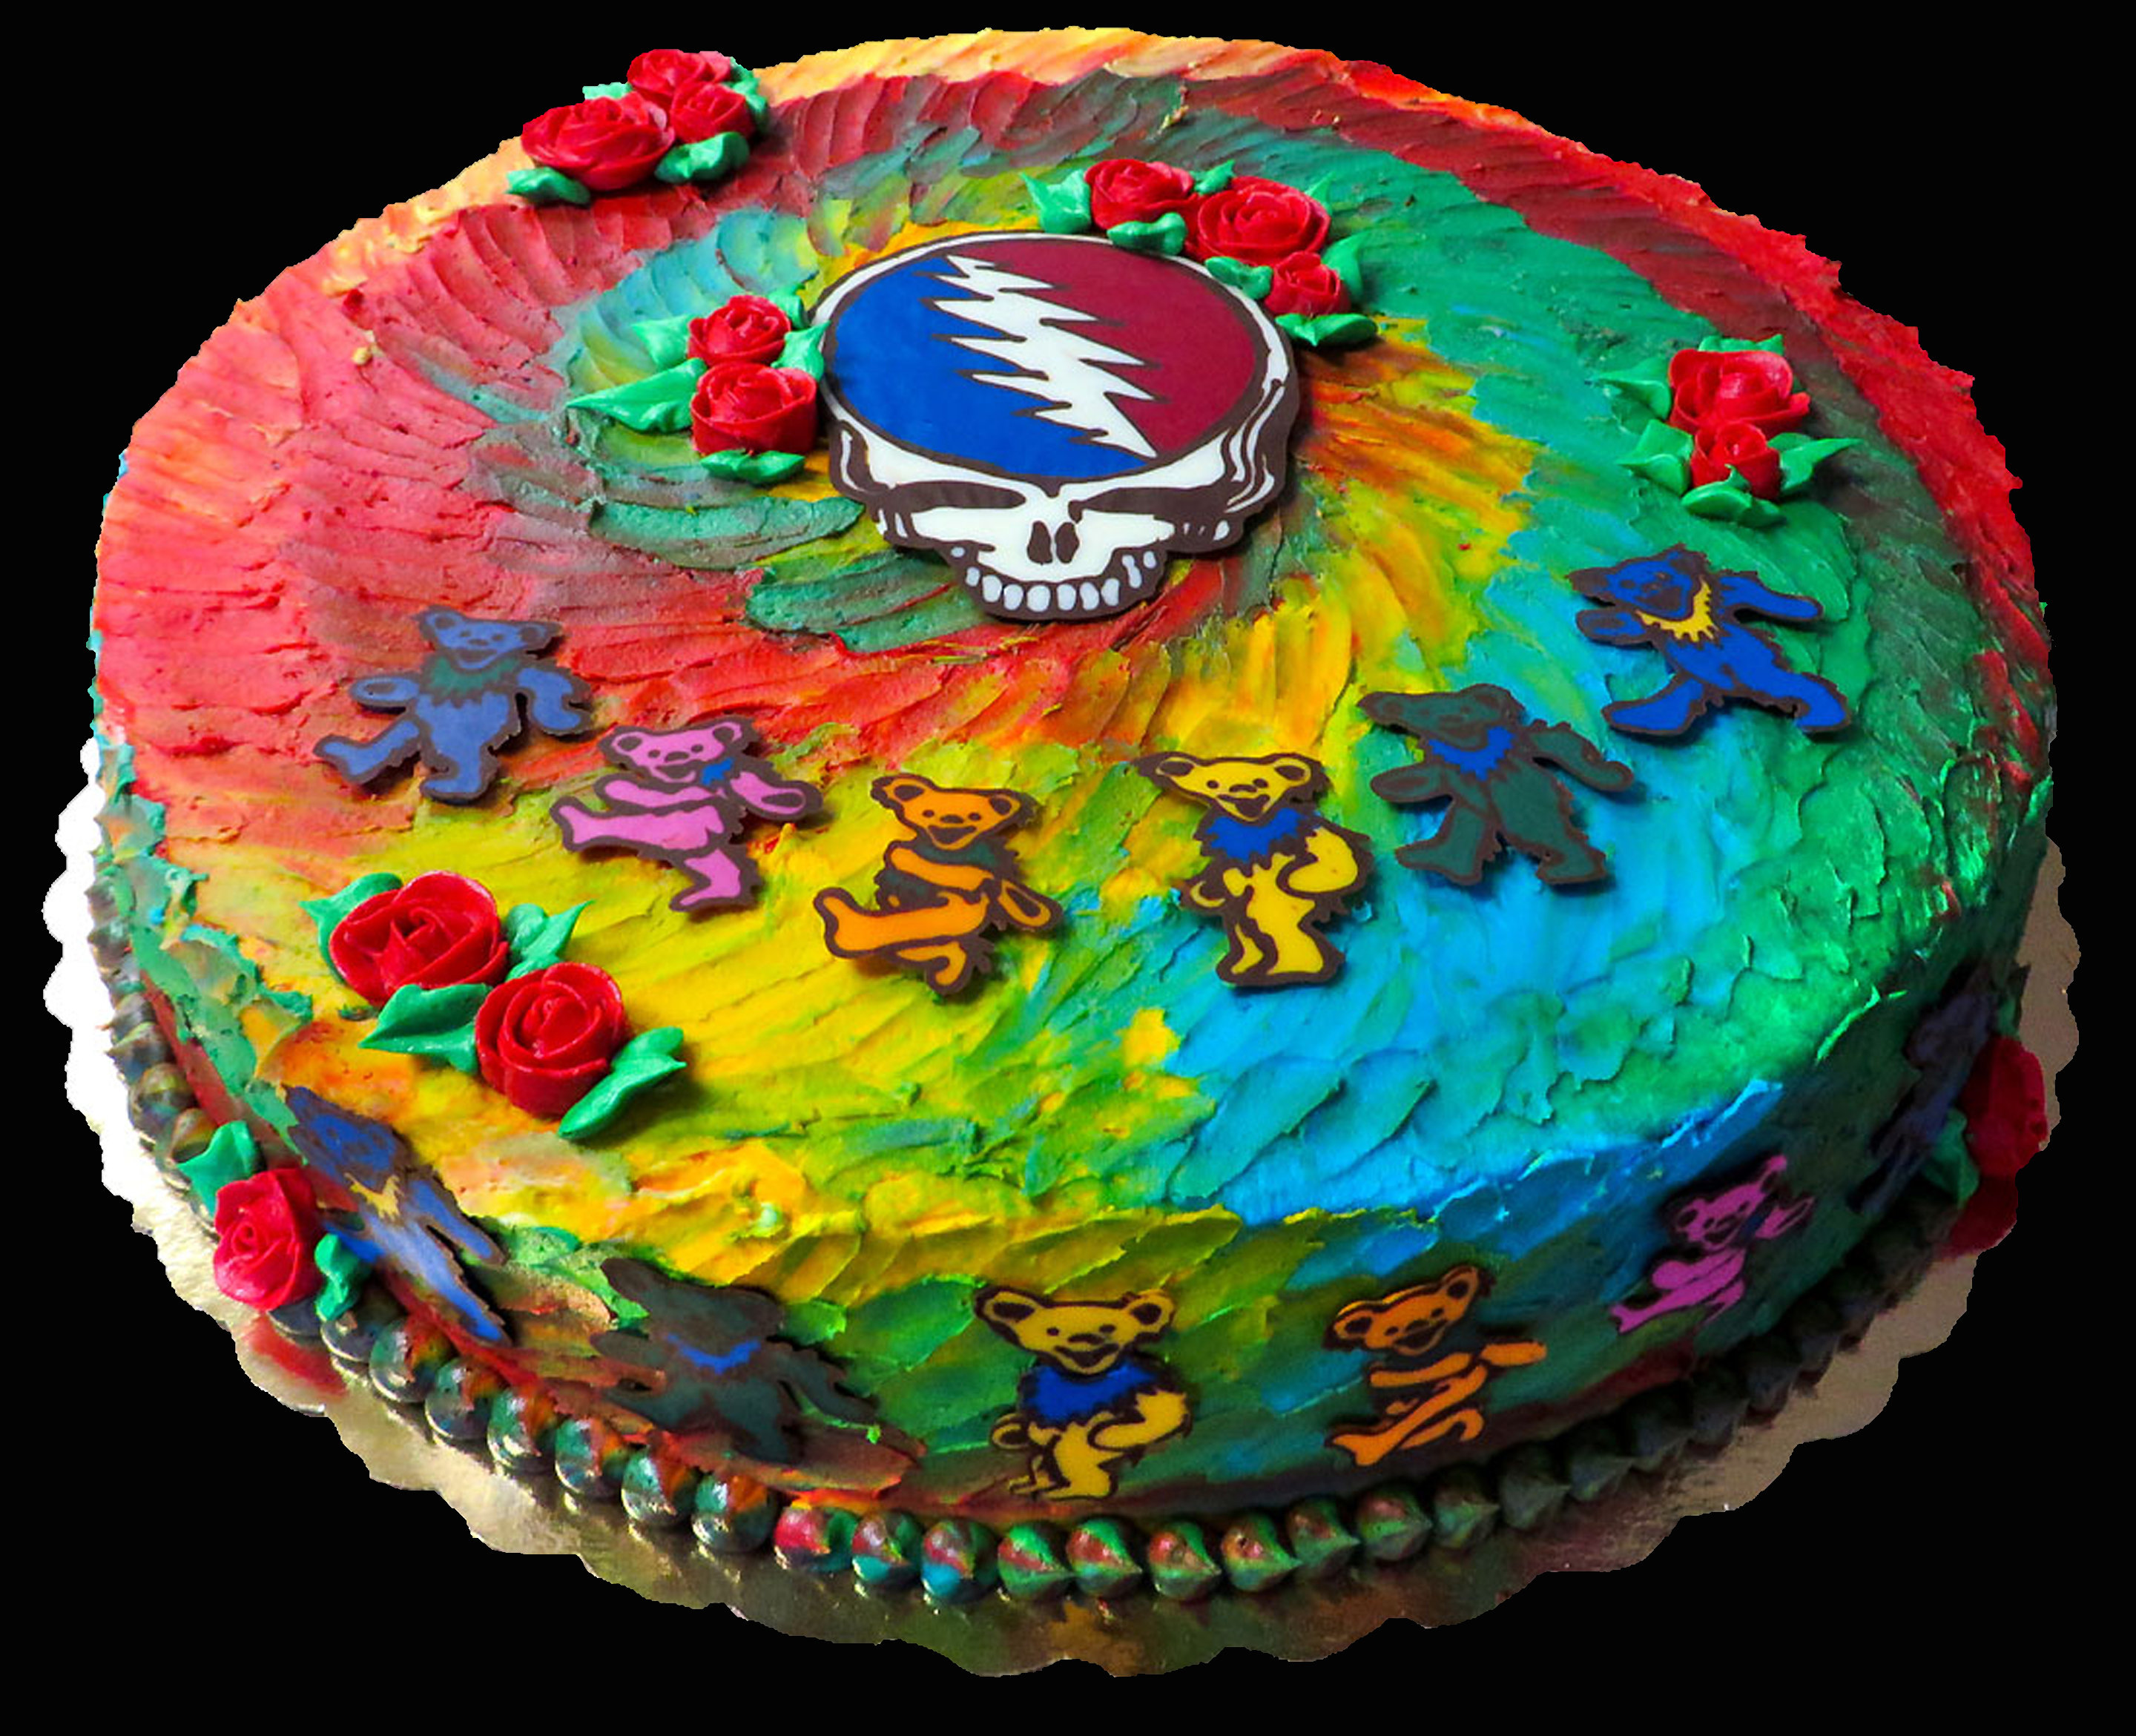 32+ Inspiration Image of Grateful Dead Birthday Cake